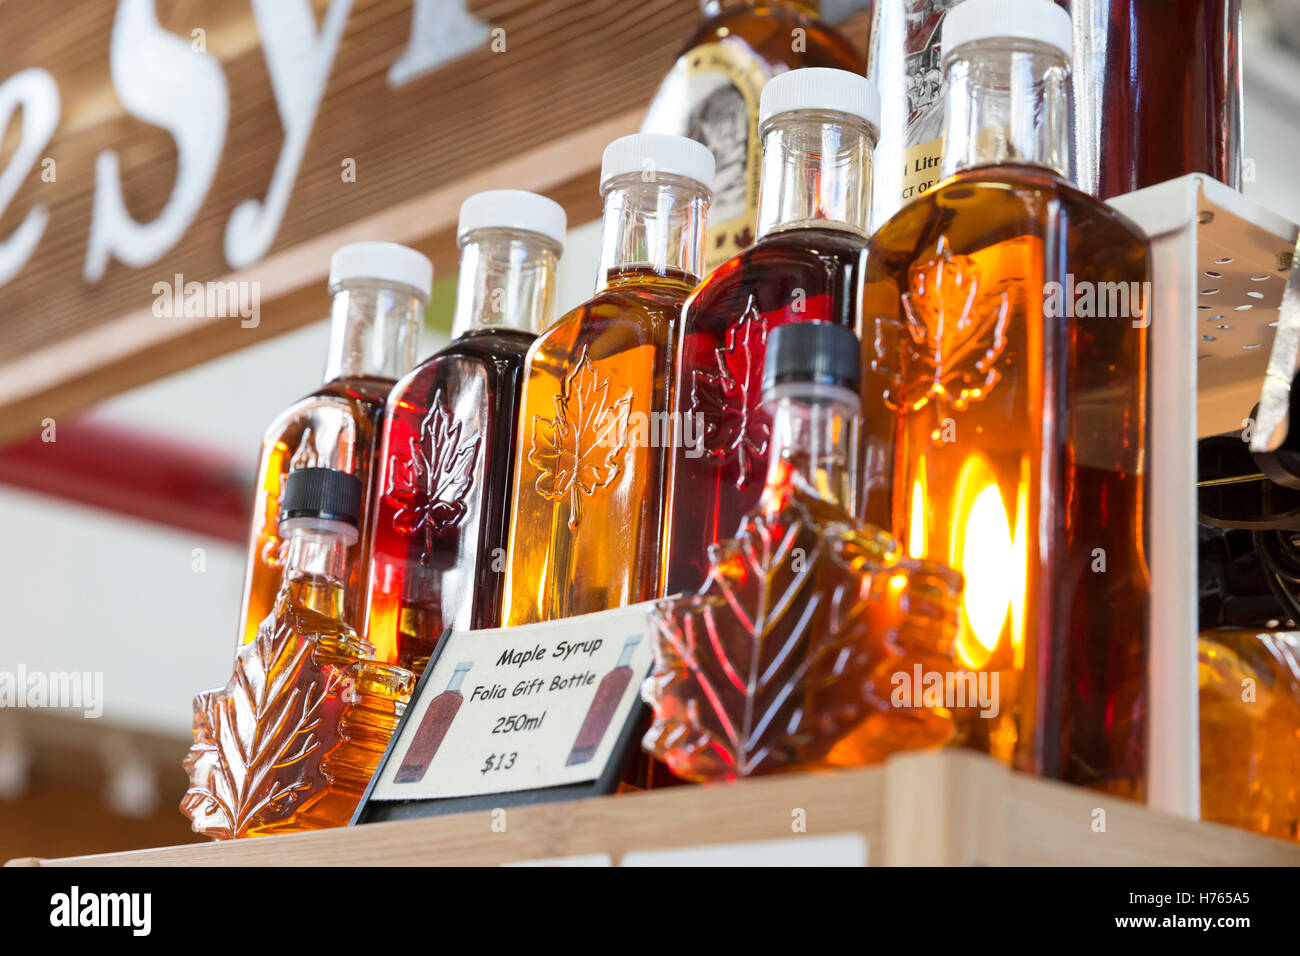 Vancouver, Canada: Varieties of maple syrup for sale at Granville Island Public Market. - Stock Image